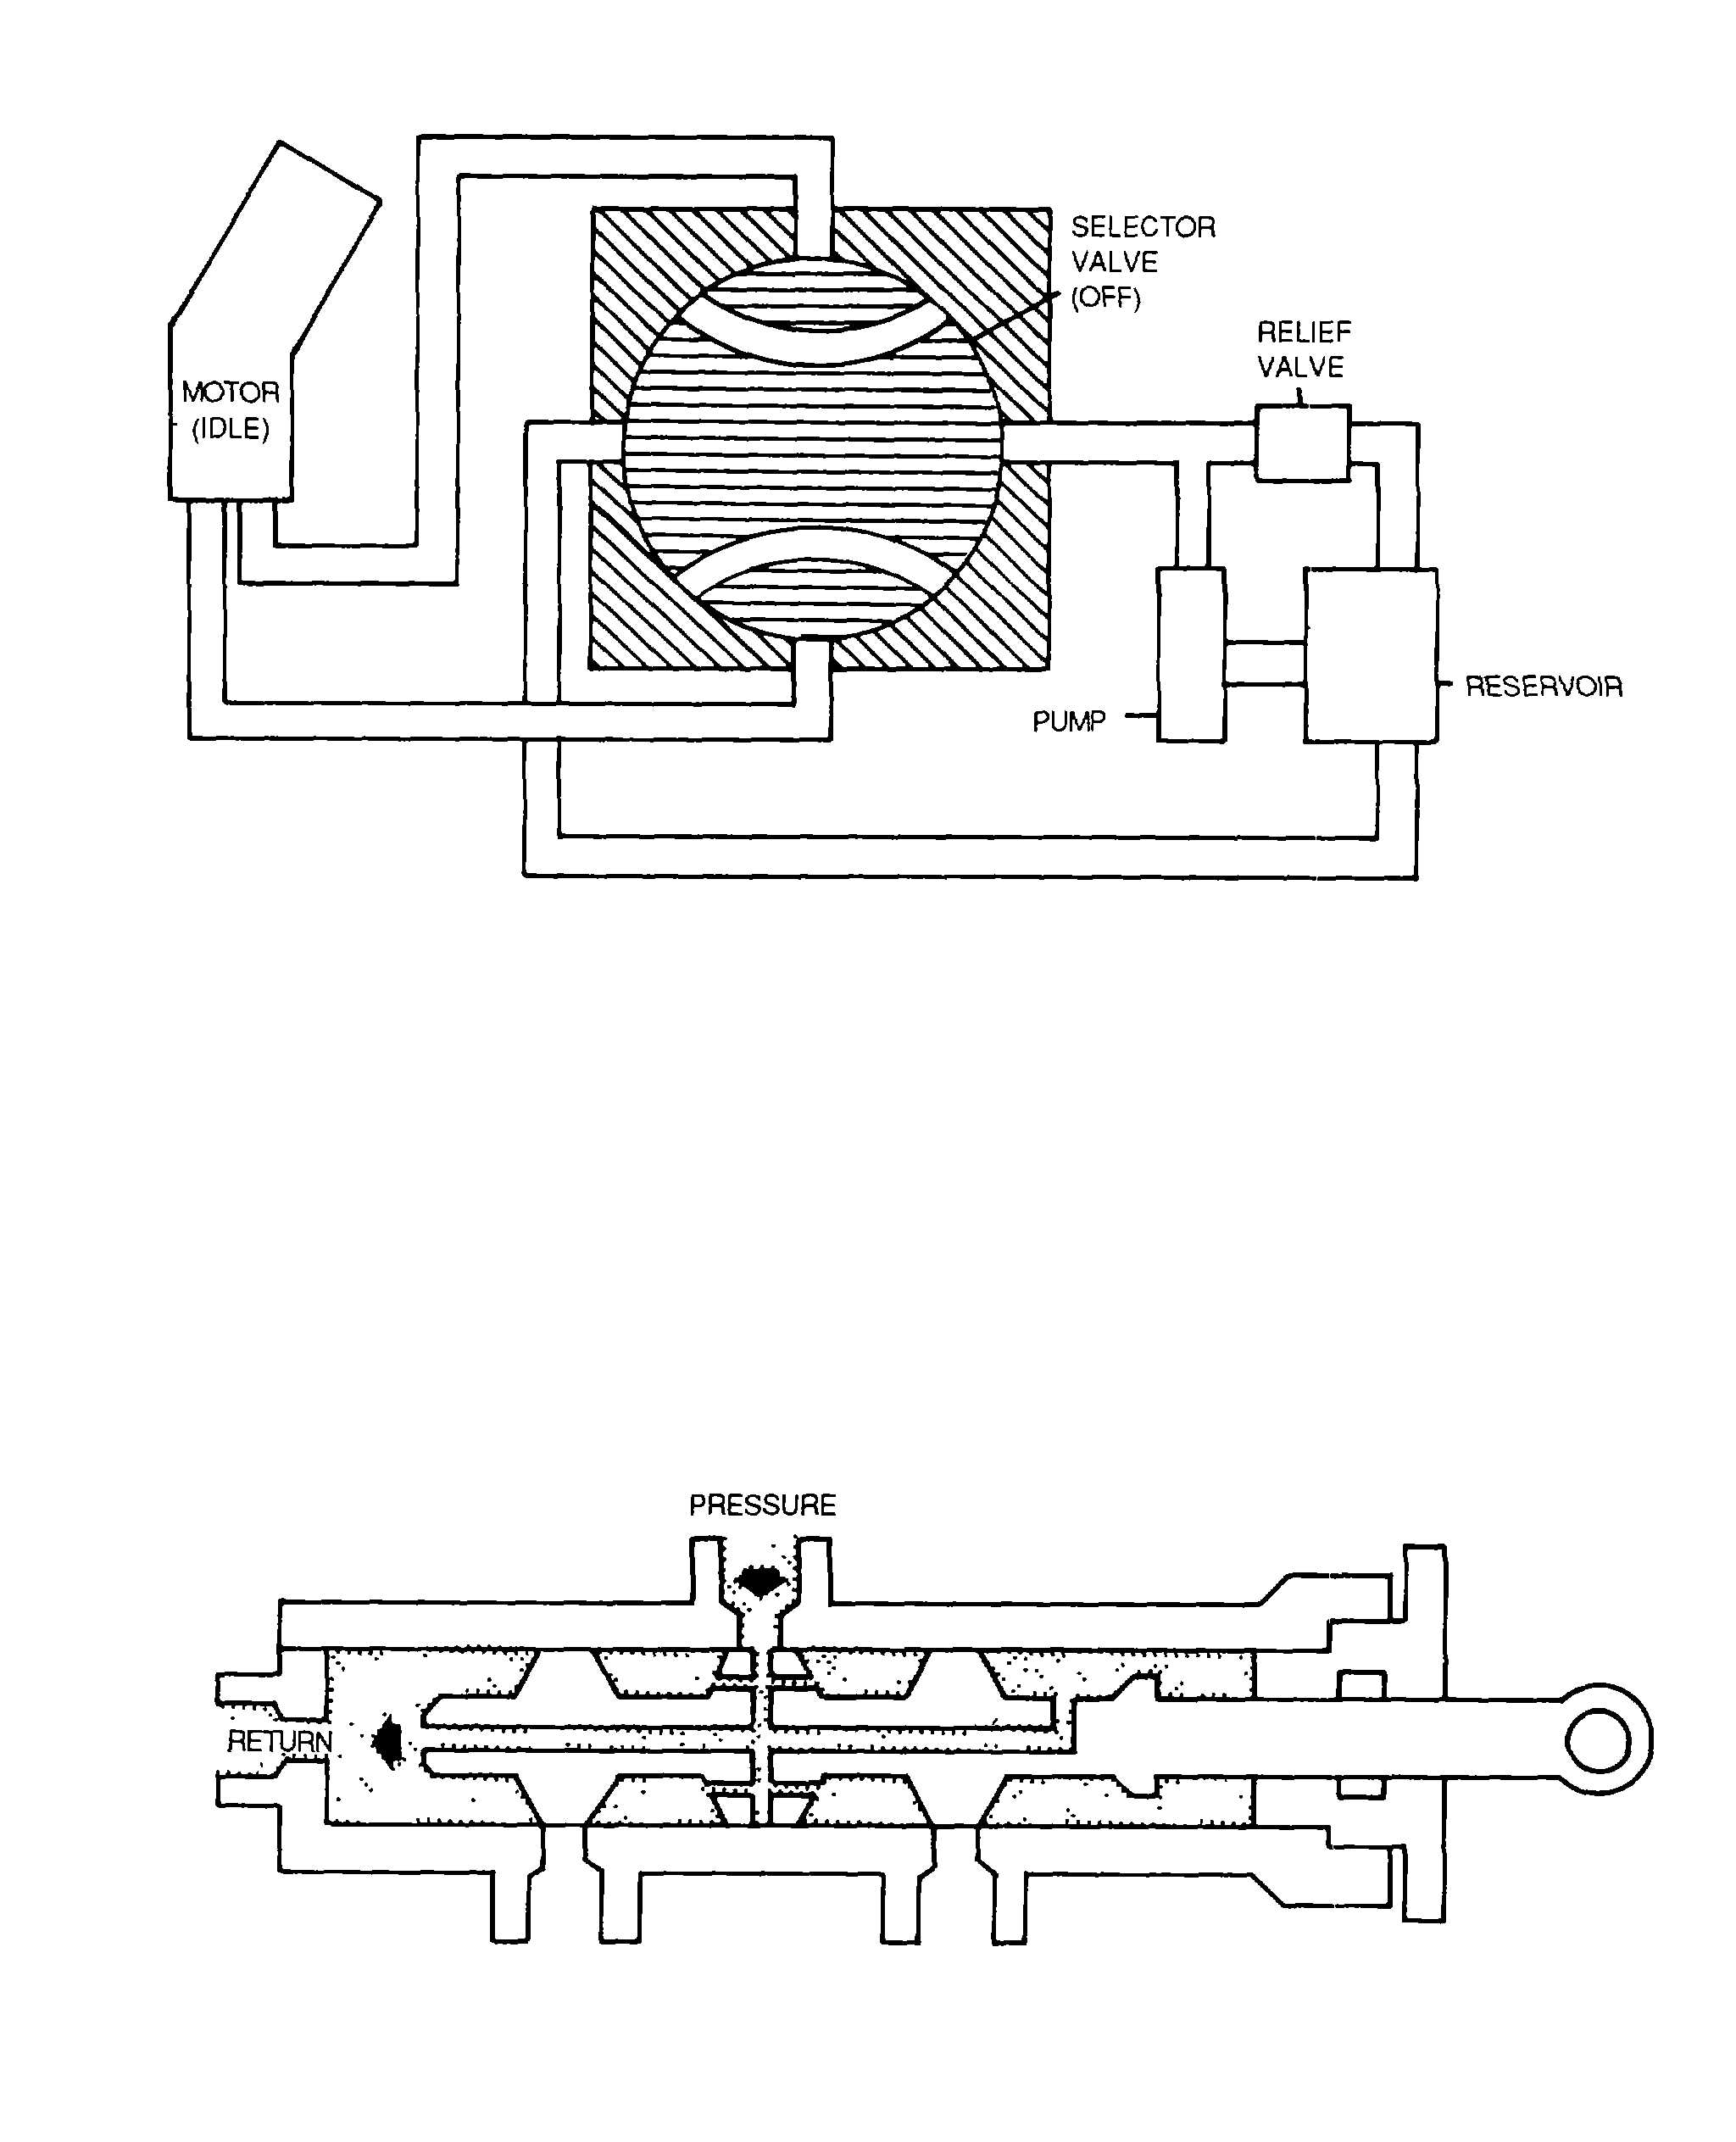 Valve Actuator Wiring Diagram Manual Of Jandy Figure 4 120 Rotary Type Closed Center Selector Eim